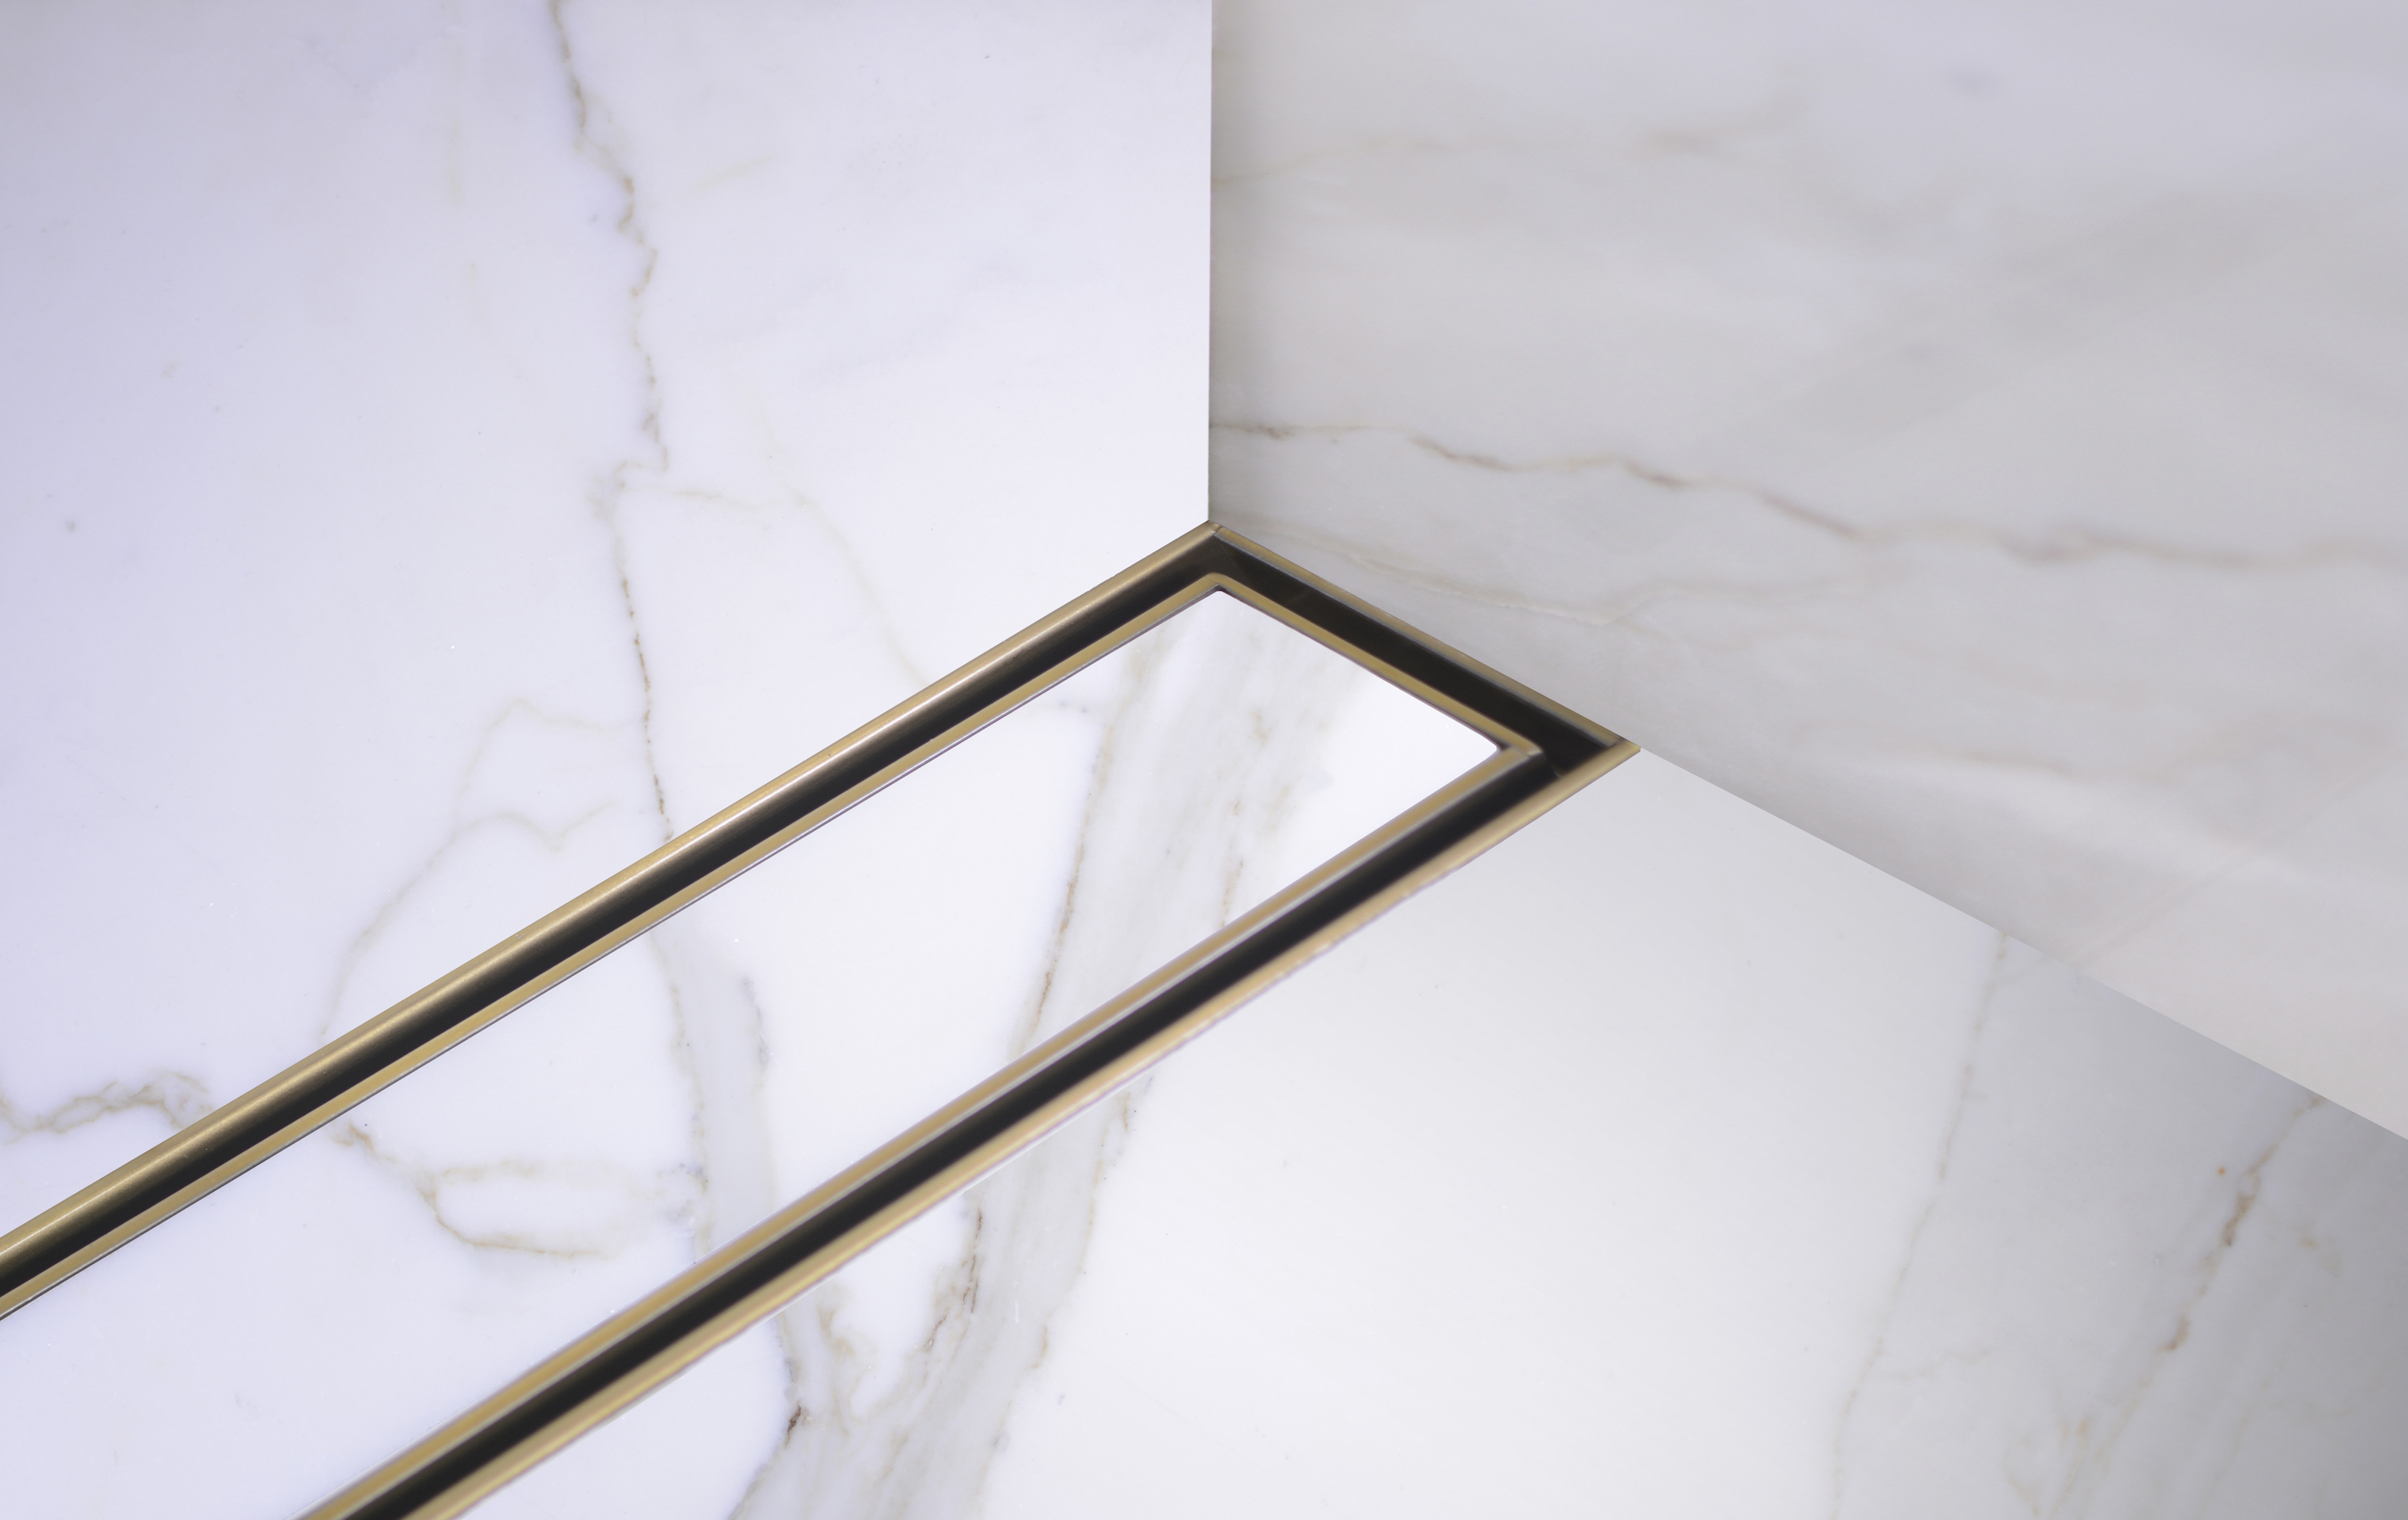 ag home with linear shower best regard regarding to drain drains infinity the s design